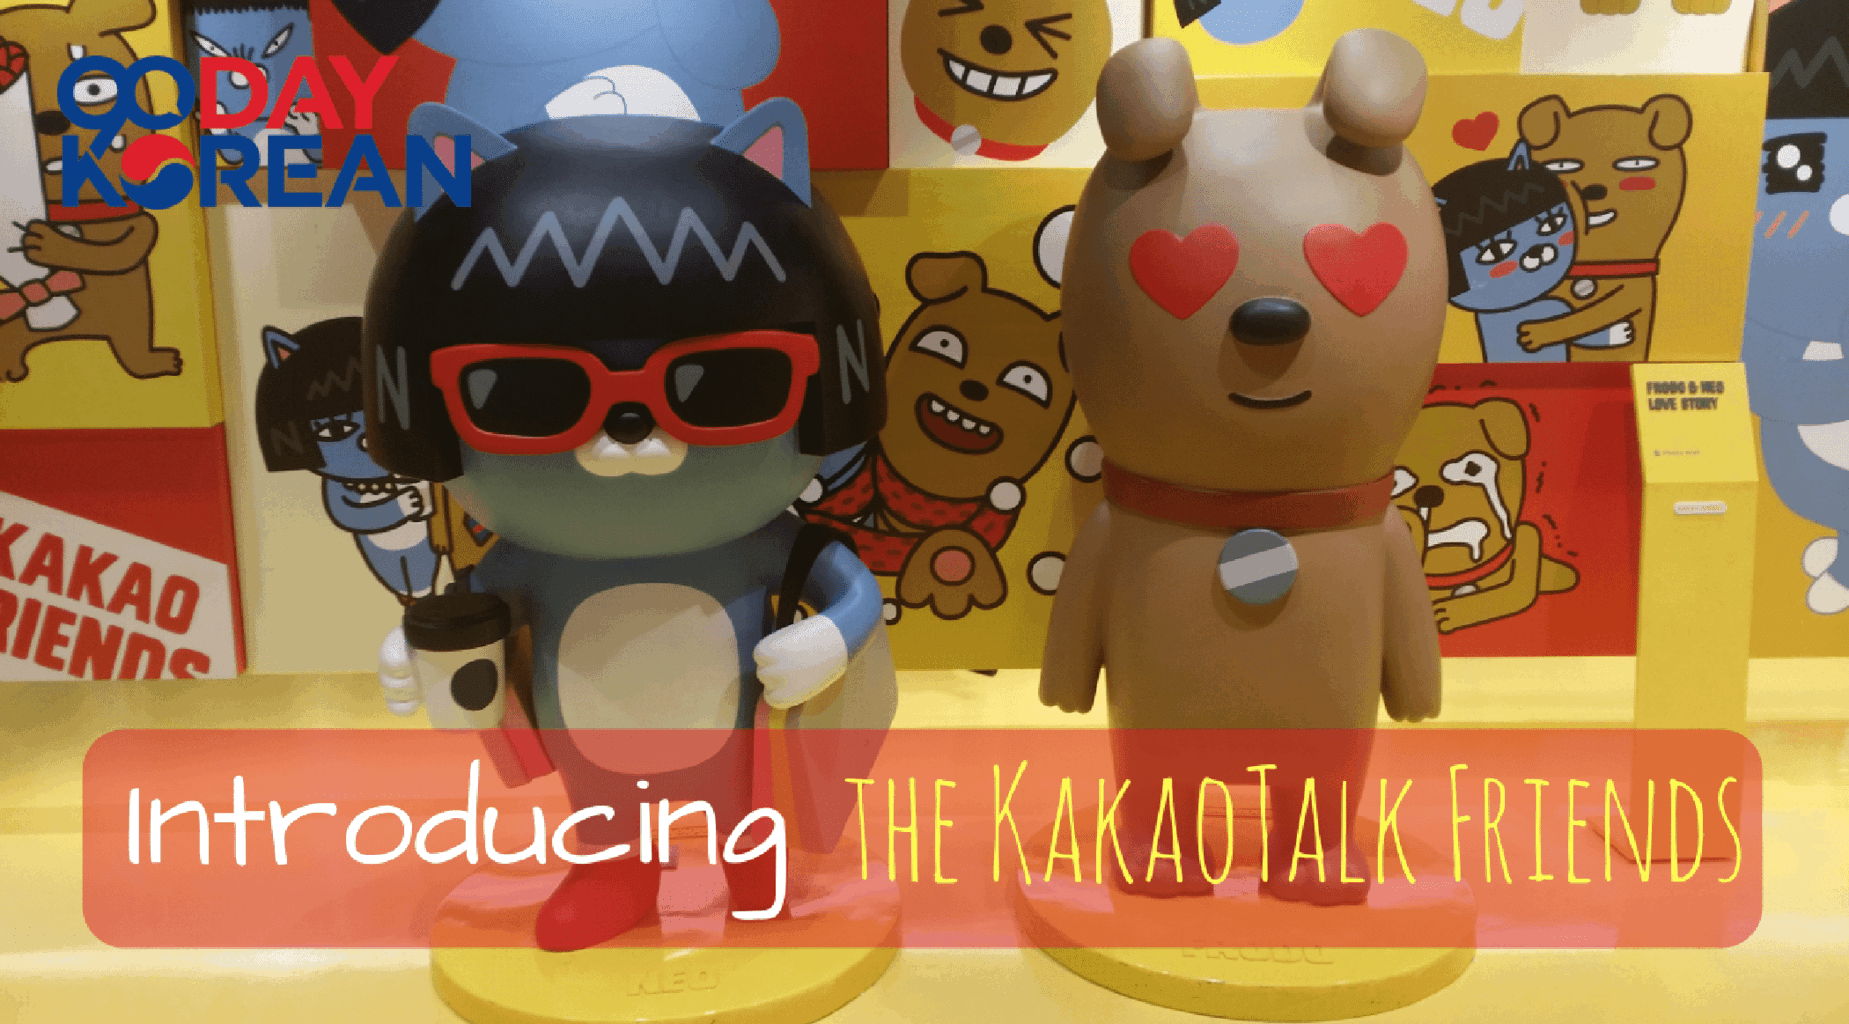 Neo and Frodo in the Kakao Friends Store